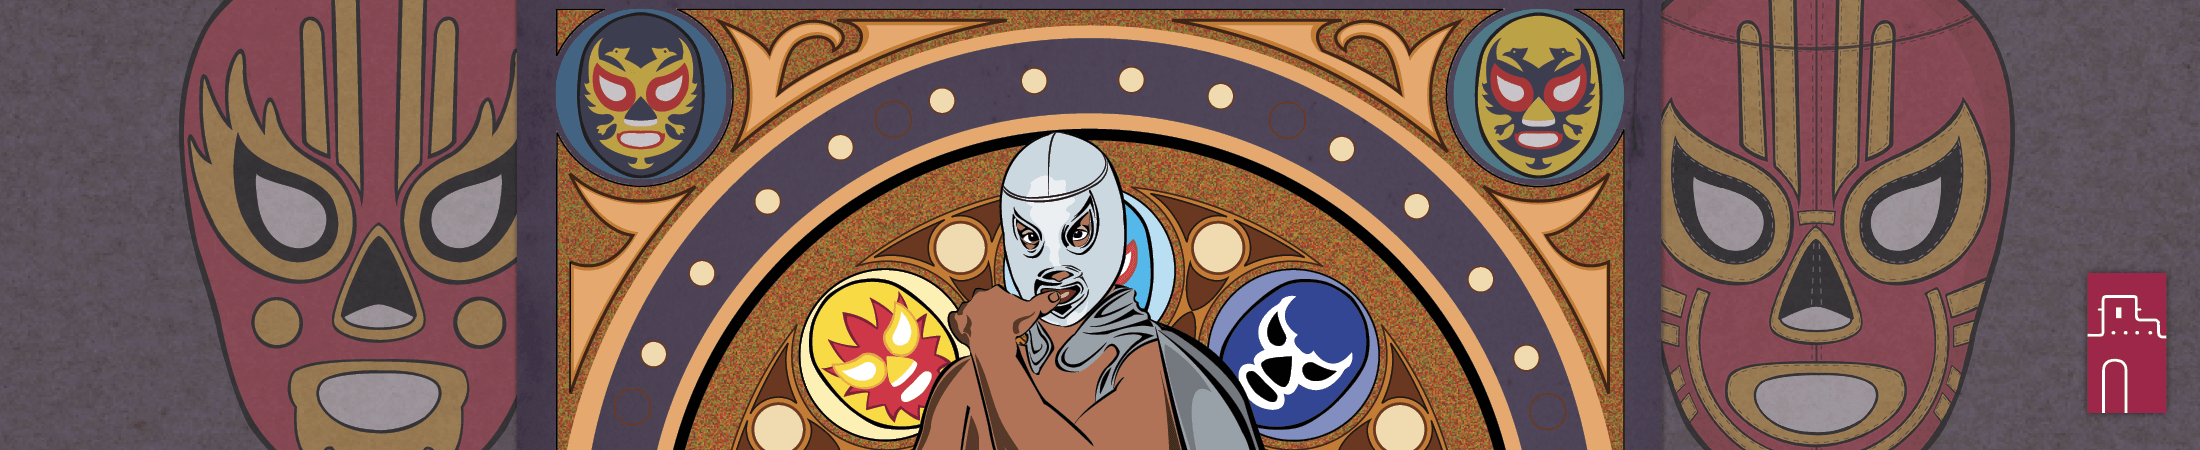 Illustration of the iconic Mexican Wrestler El Santo wearing his mask and cape